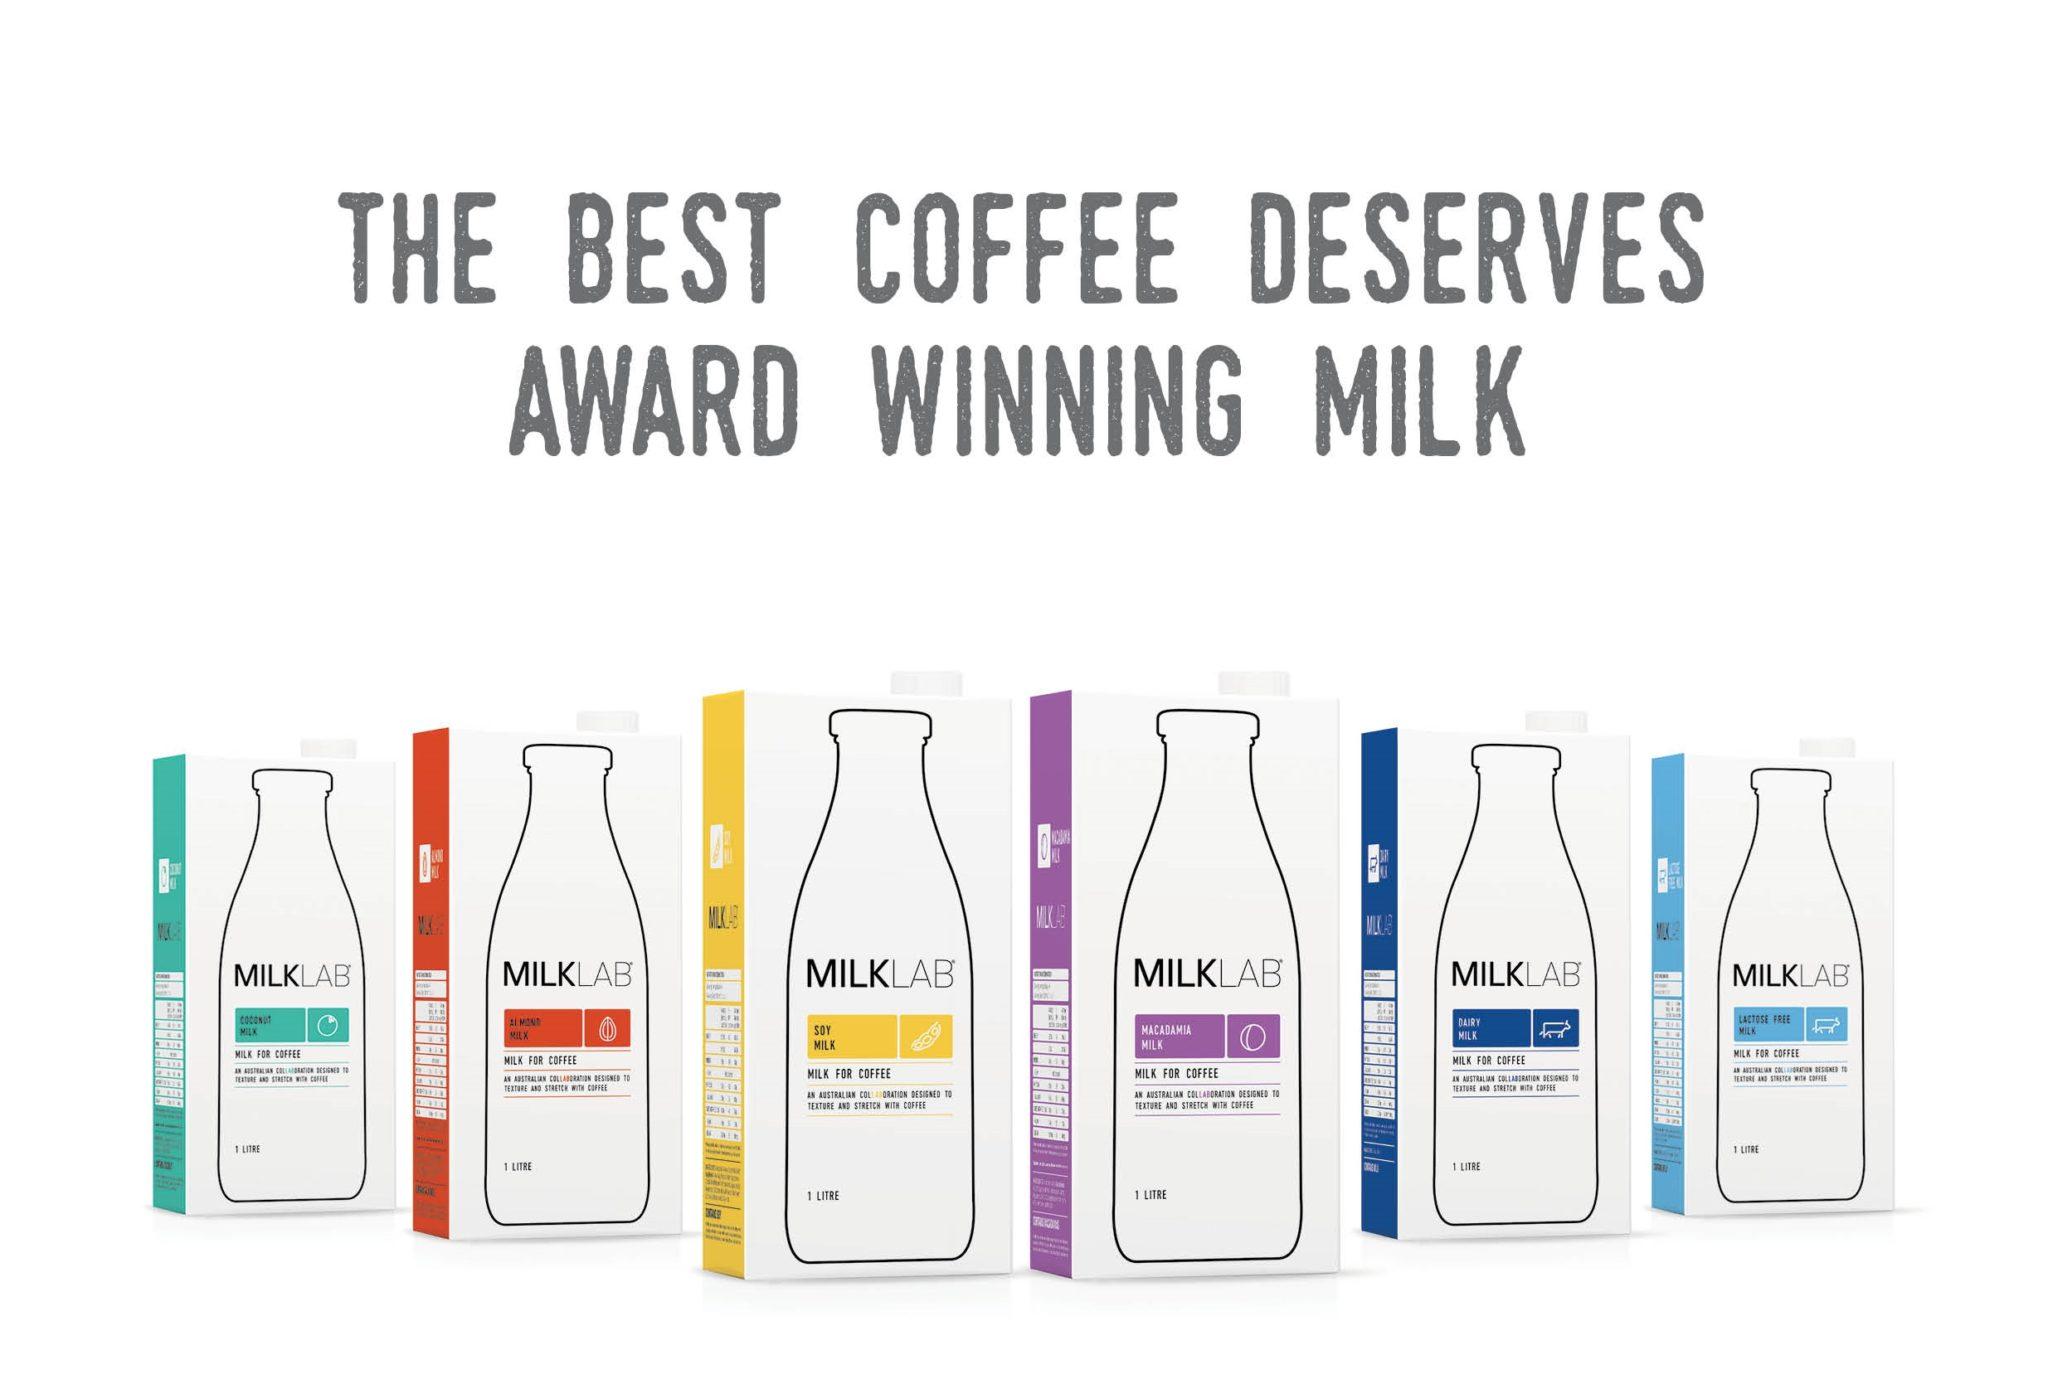 MILKLAB Awards Flyer ie contact2 - Copy